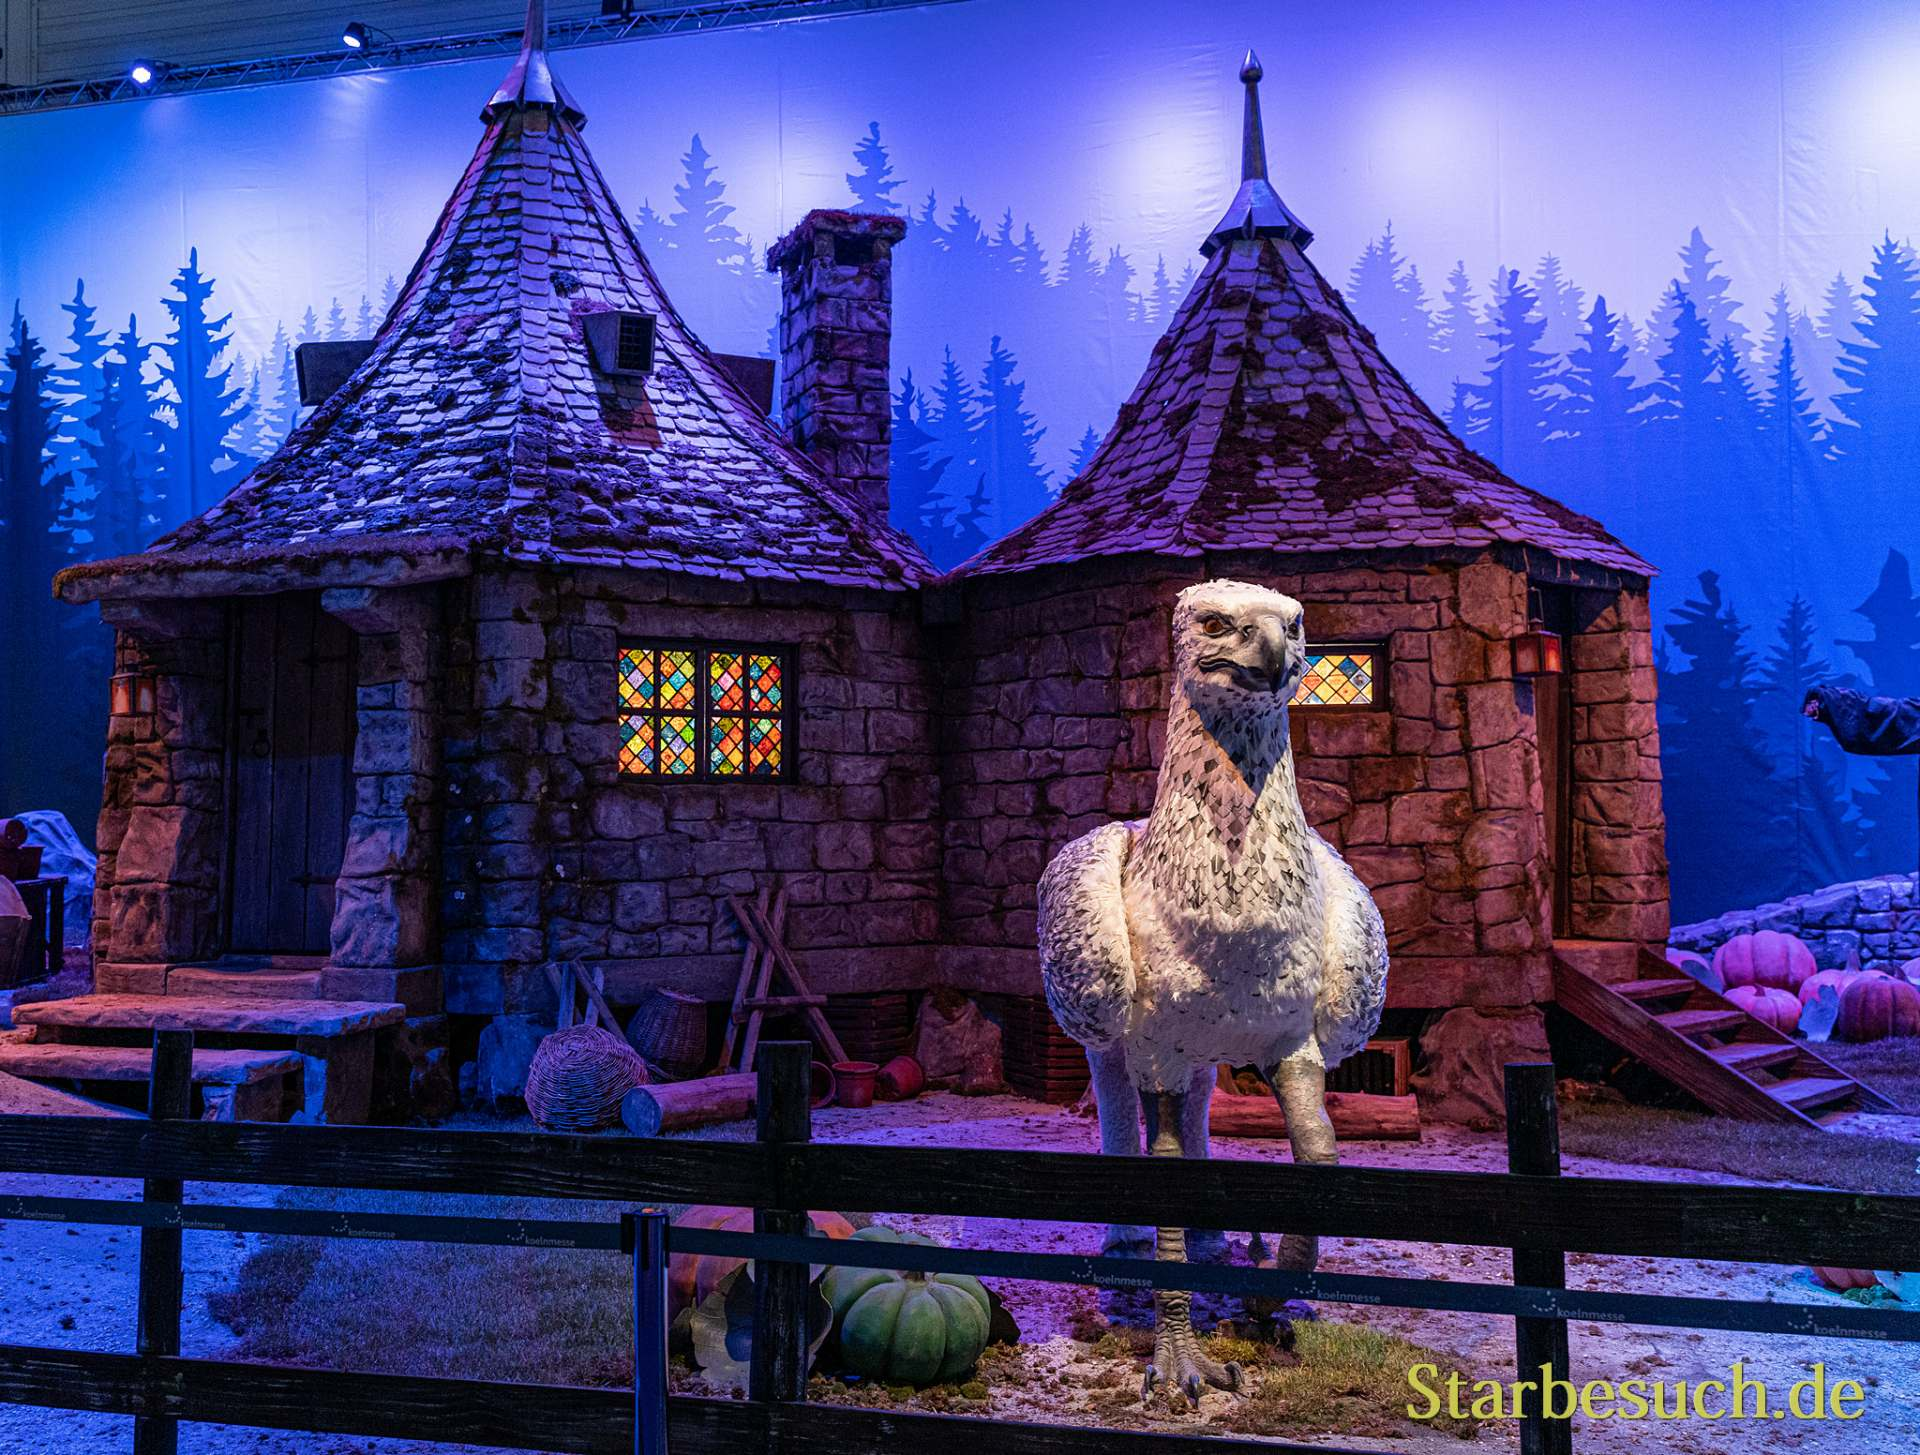 COLOGNE, GERMANY - JUN 28th 2019: Impressions from CCXP Cologne: Replica of Hagrid's Cabin from Harry Potter